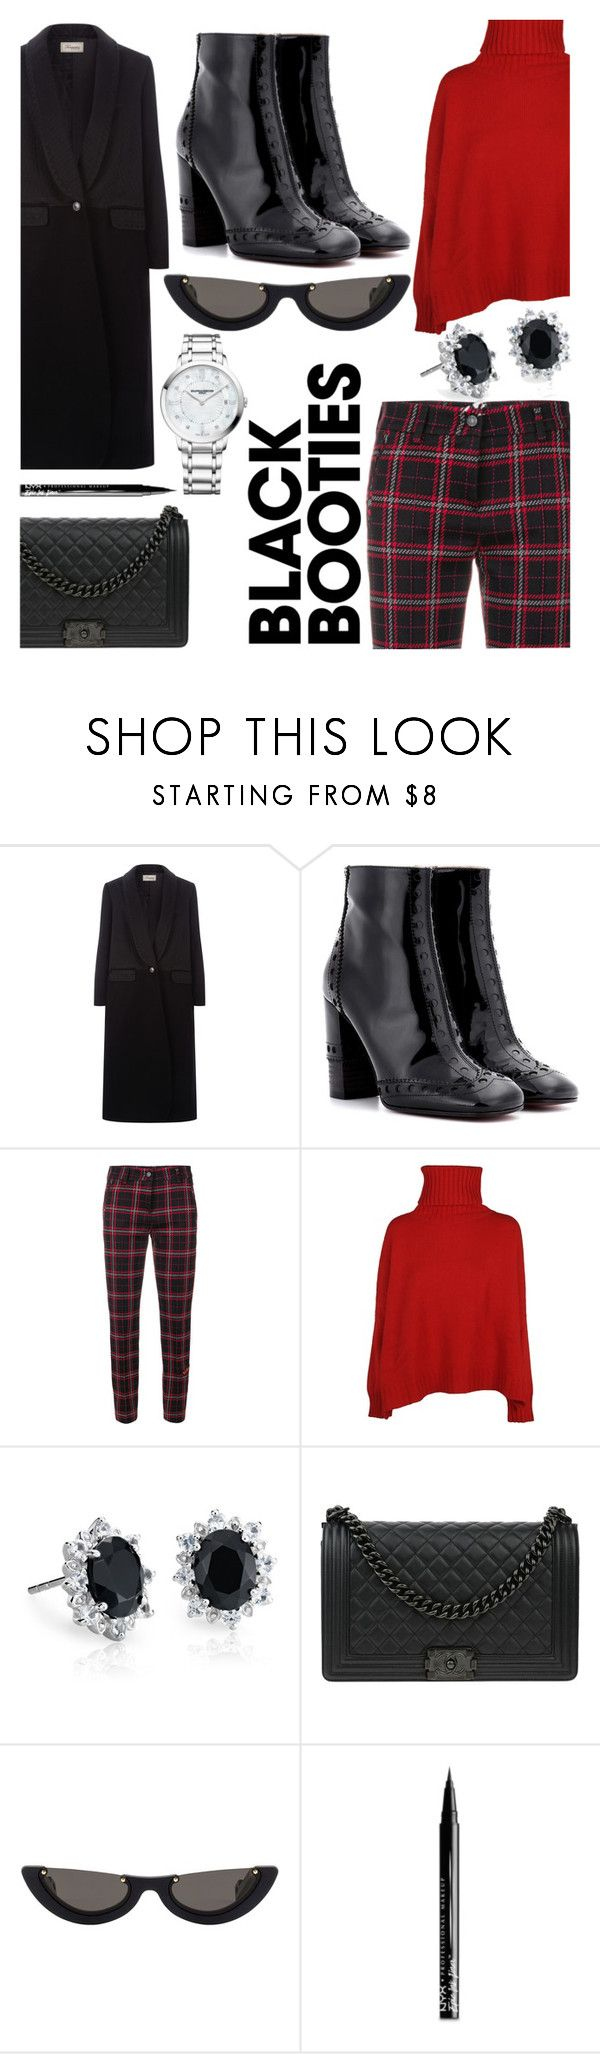 """""""Back to the Basics"""" by mistiquelady ❤ liked on Polyvore featuring Temperley London, Chloé, Cambio, Ermanno Scervino, Blue Nile, Chanel, PAWAKA, NYX and Baume & Mercier"""